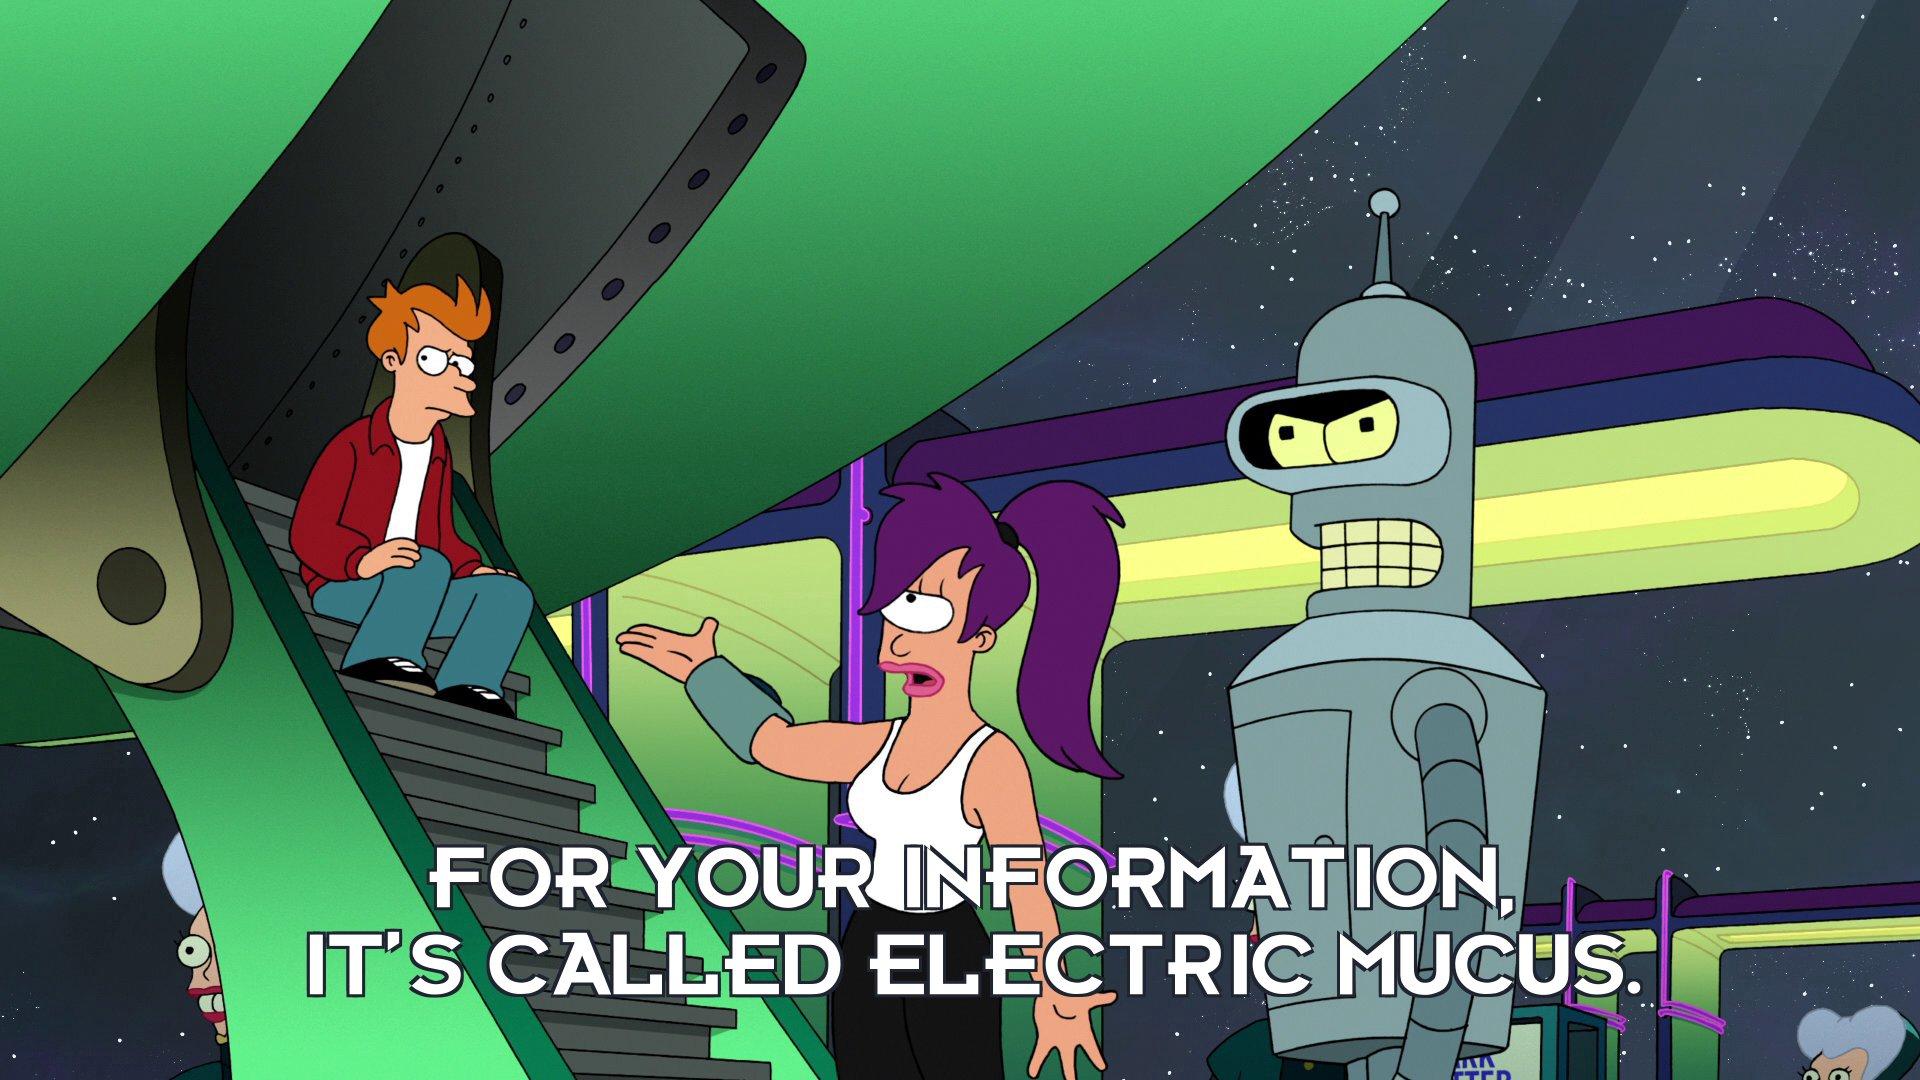 Turanga Leela: For your information, it's called Electric Mucus.